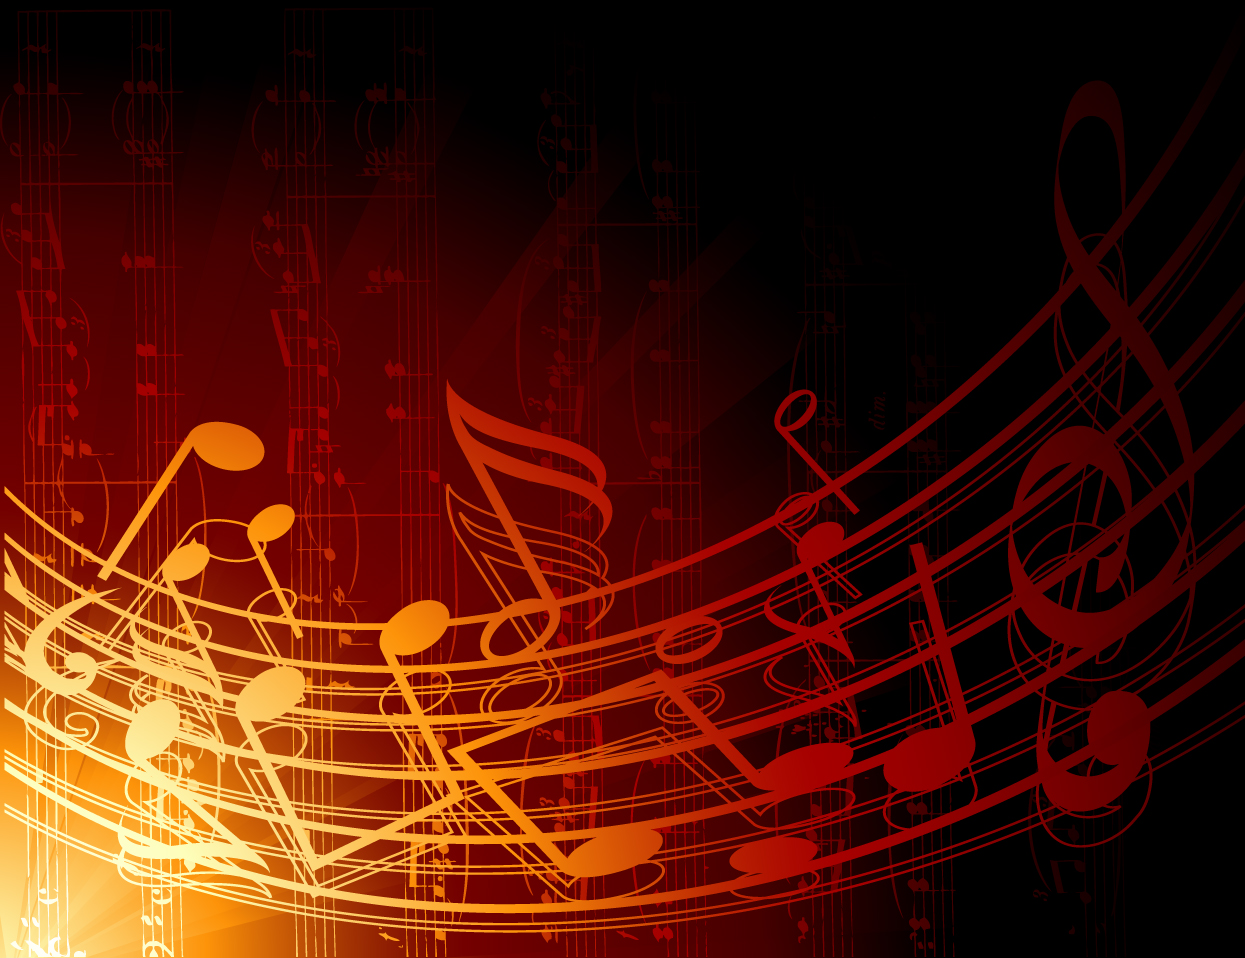 Music Notes Background: Music Background